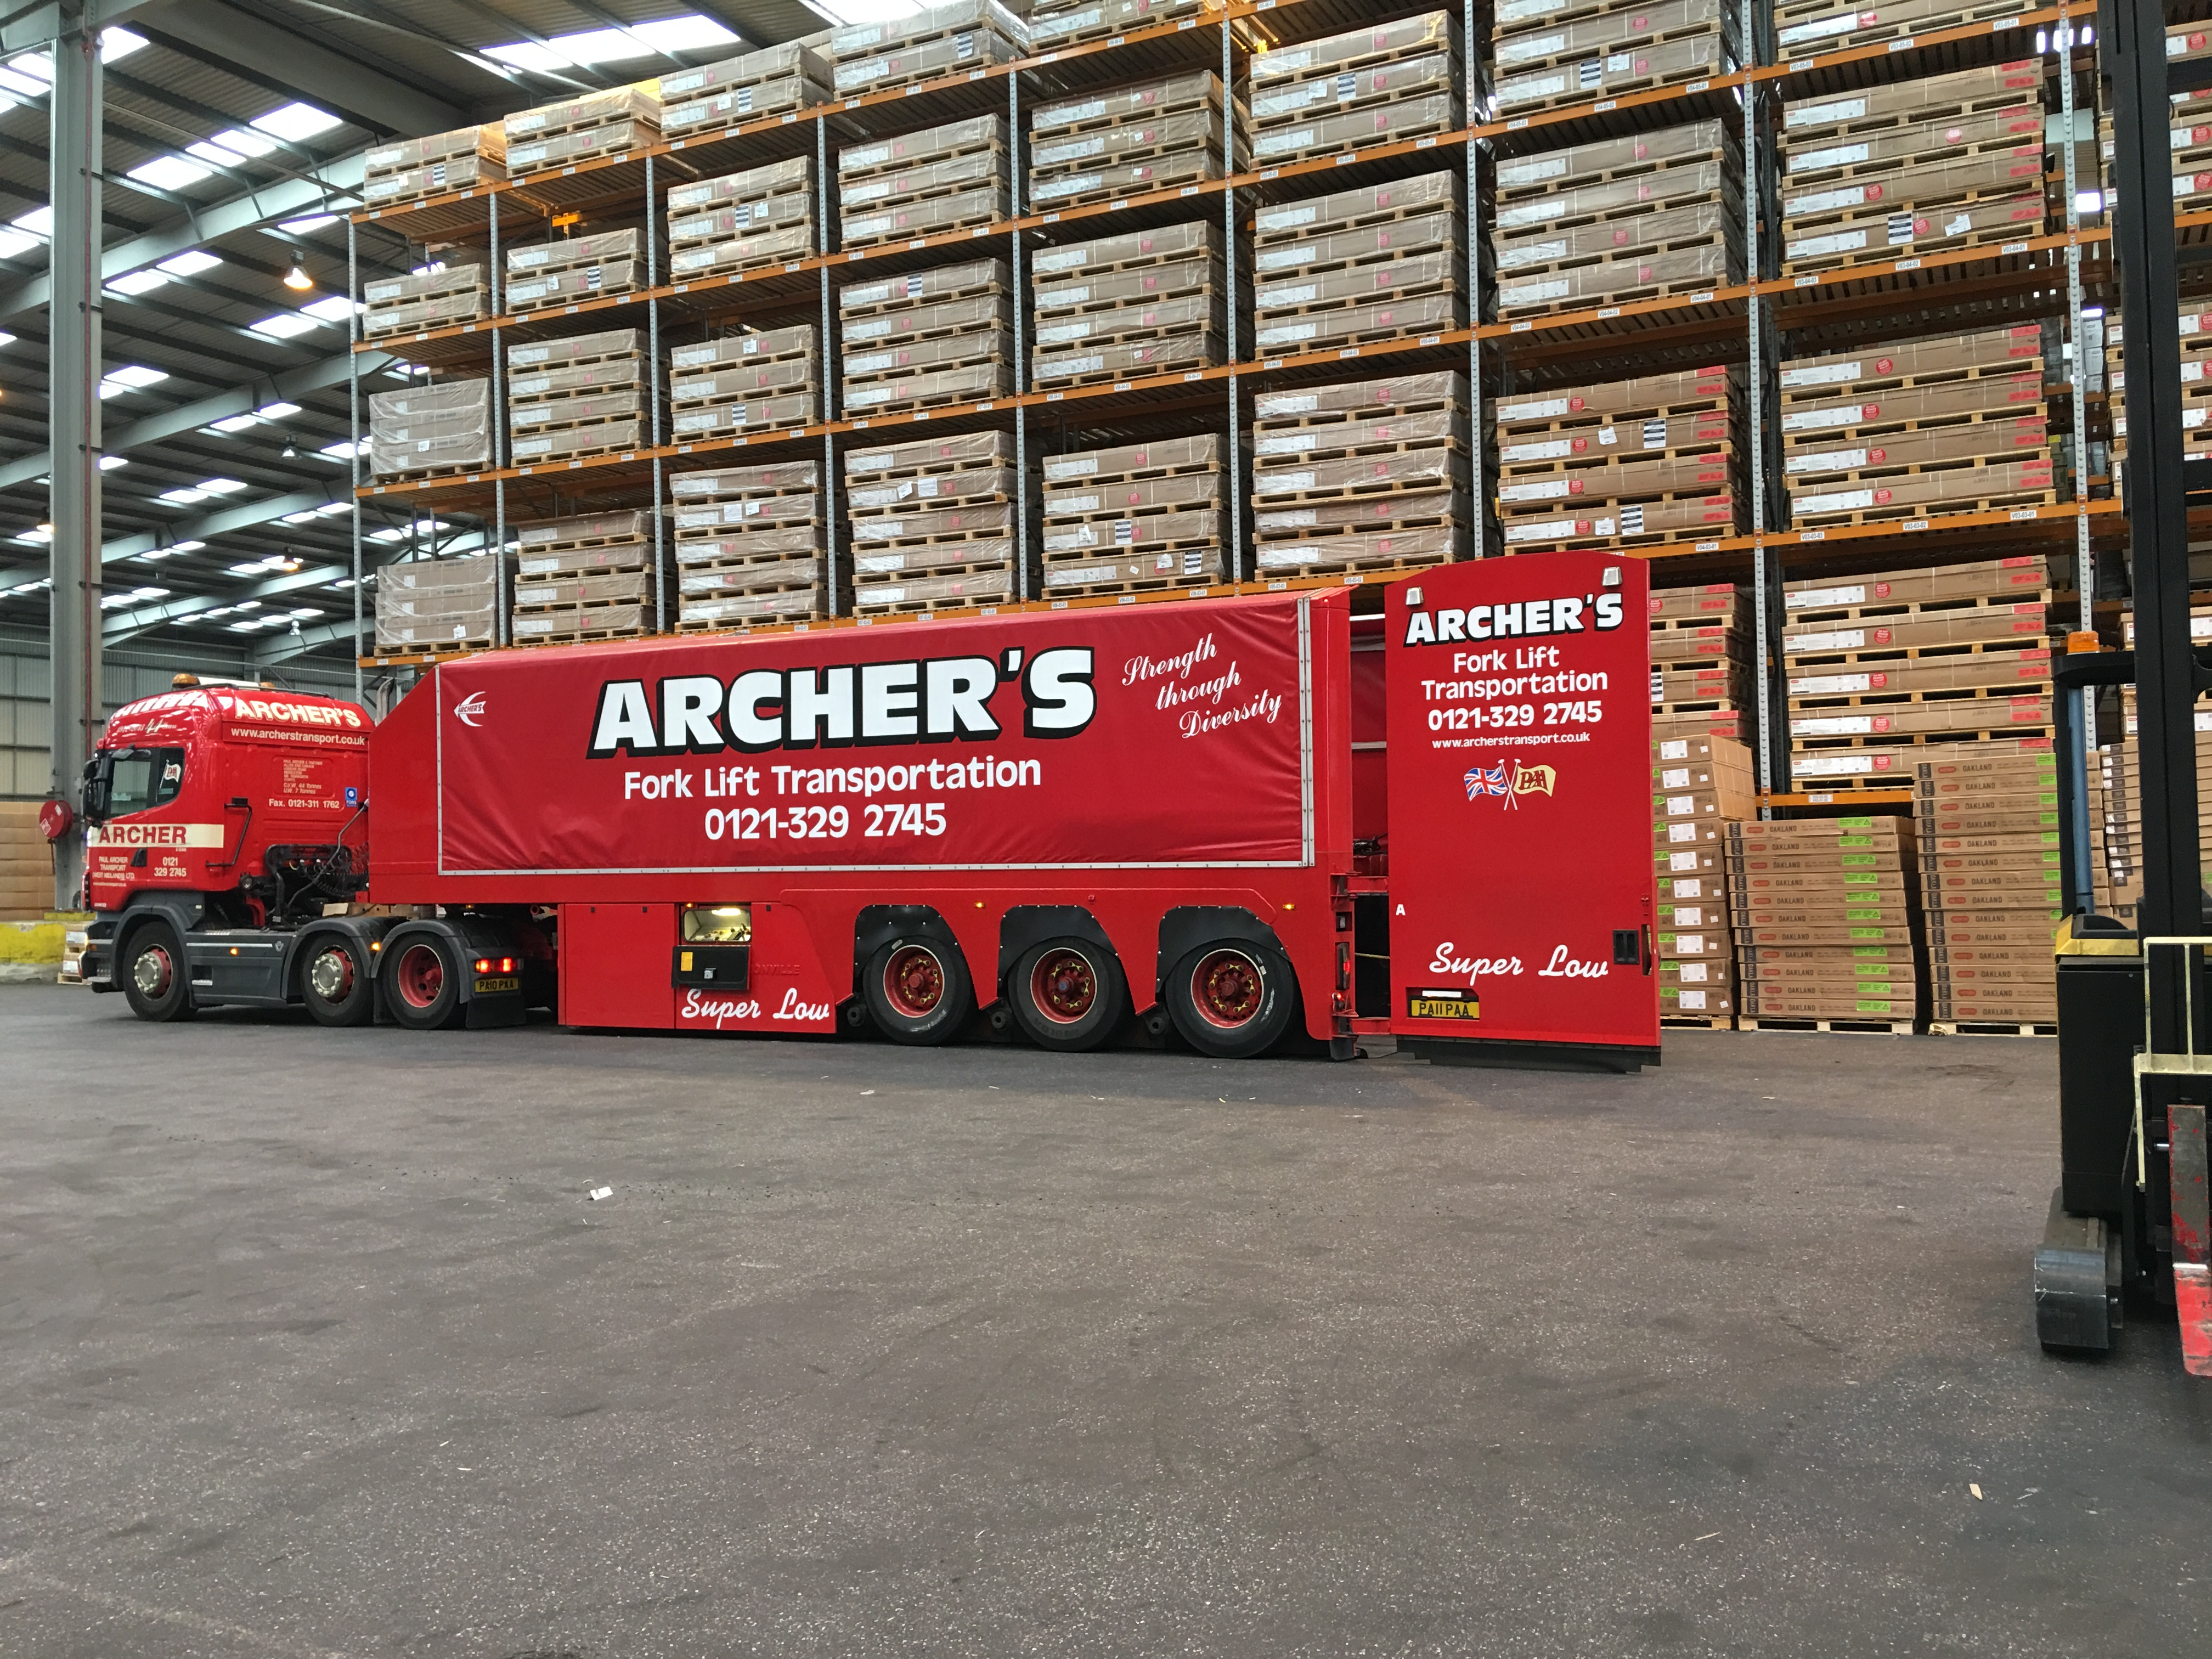 Archers Transport